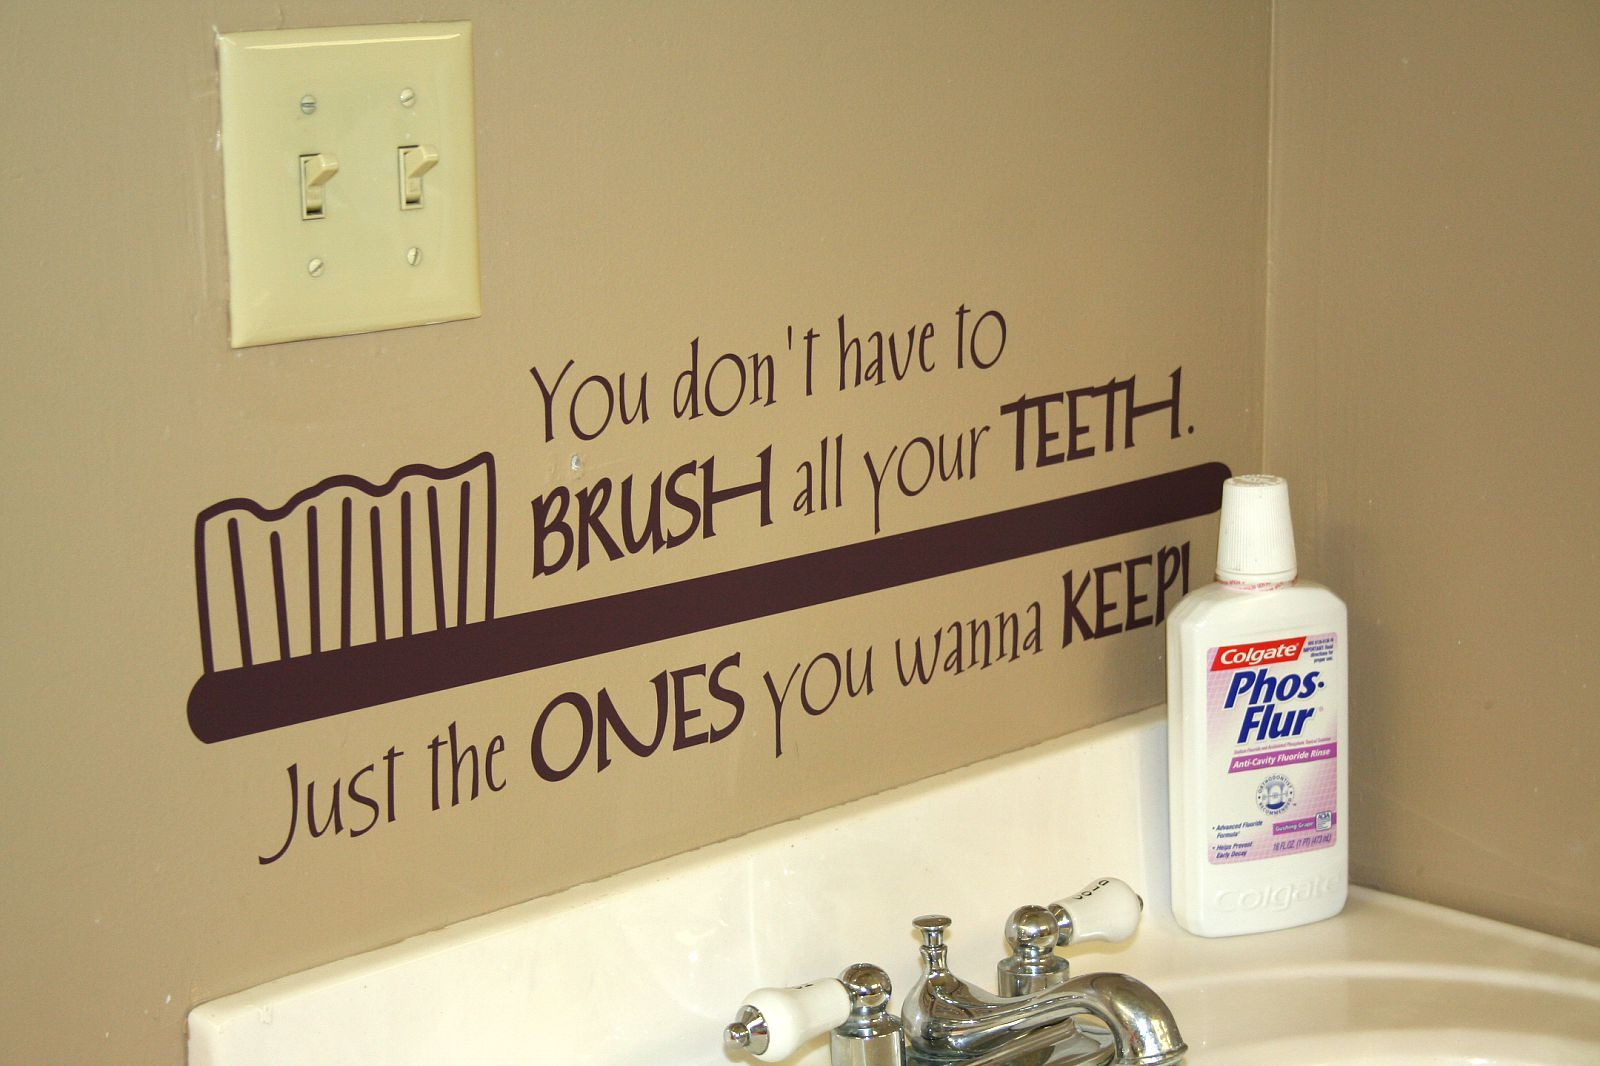 Add this fun Uppercase Living design to your dentist office ...